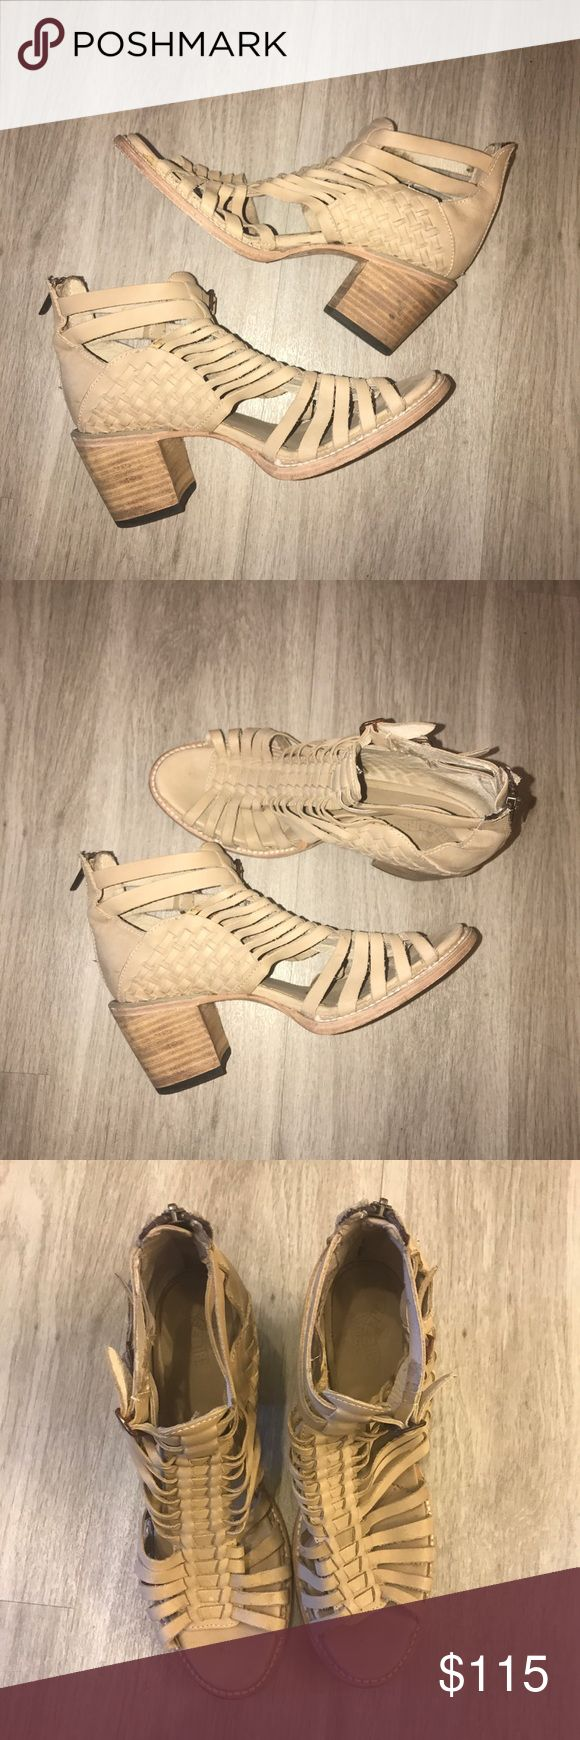 """Freebird by Steve Madden Totem Heeled Sandal In excellent used condition, worn twice! Freebird by Steve Madden Nude Heeled Sandal. Size 9 but these run Large. Better for a 9.5. Heel is 3"""". All genuine leather. Zipper back closure. Super comfortable for all day wear.   🚫Trades/Holds🚫 🚫Modeling🚫 🚫Will NOT accept lowball offers!🚫 📦Ships Same or Next Day📦 Freebird by Steven Shoes Heels"""